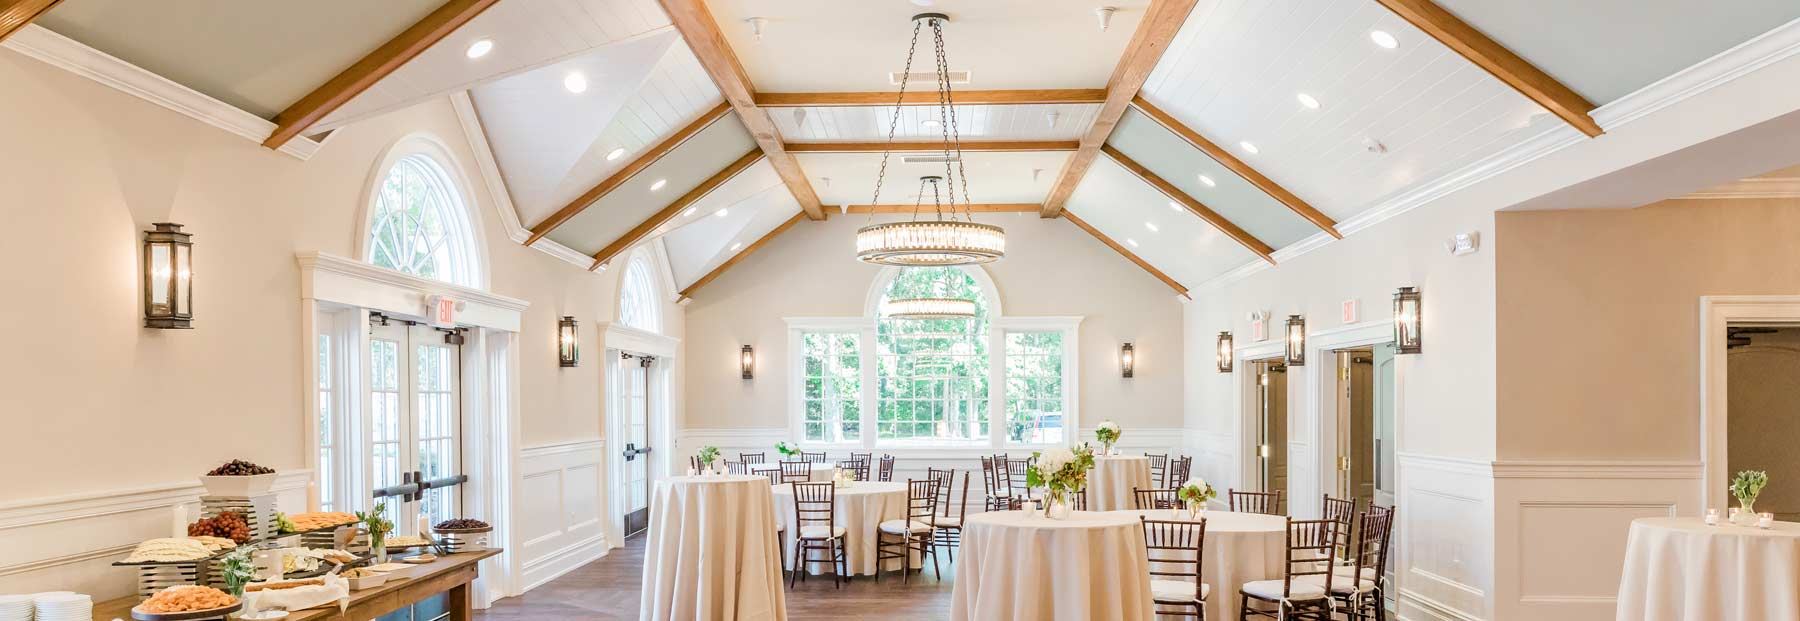 The Grove At Centerton Private Event Space Nj Wedding Corporate Meeting Venues In South Jersey Casual Dining Restaurants Near Me